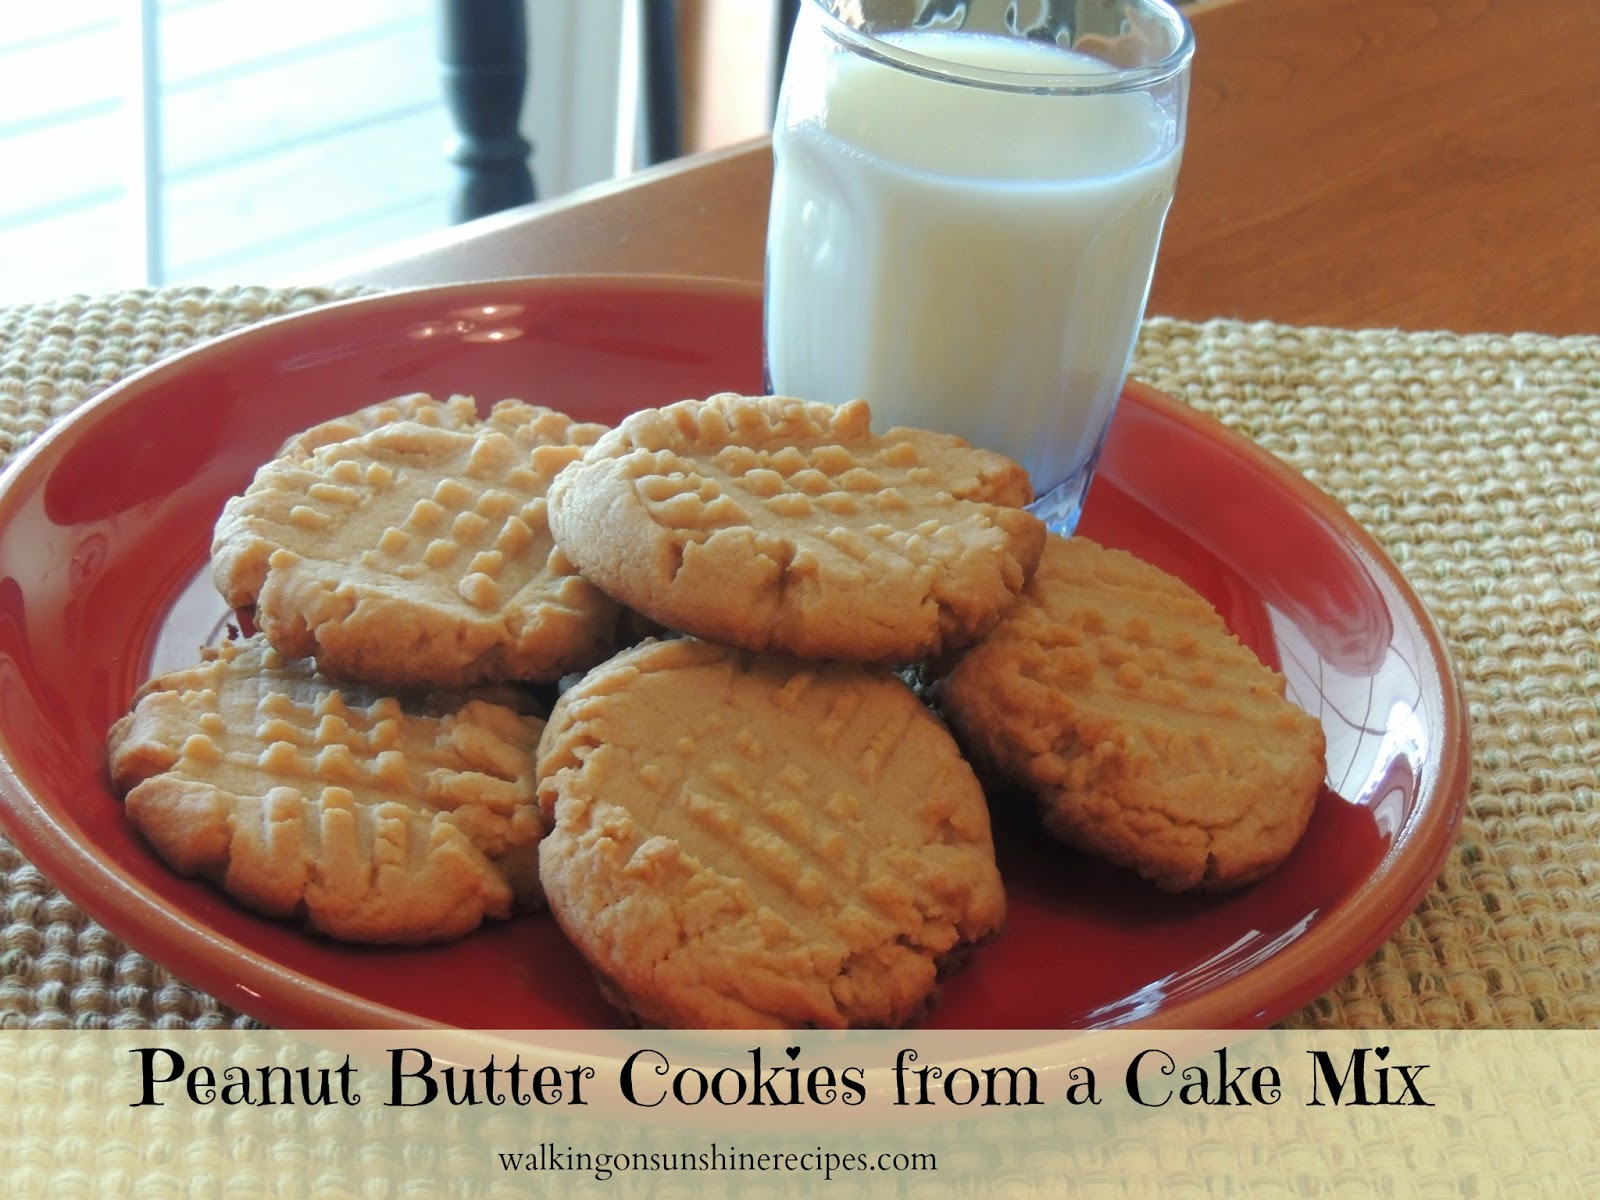 Recipe For Cake Cookies Using Cake Mix